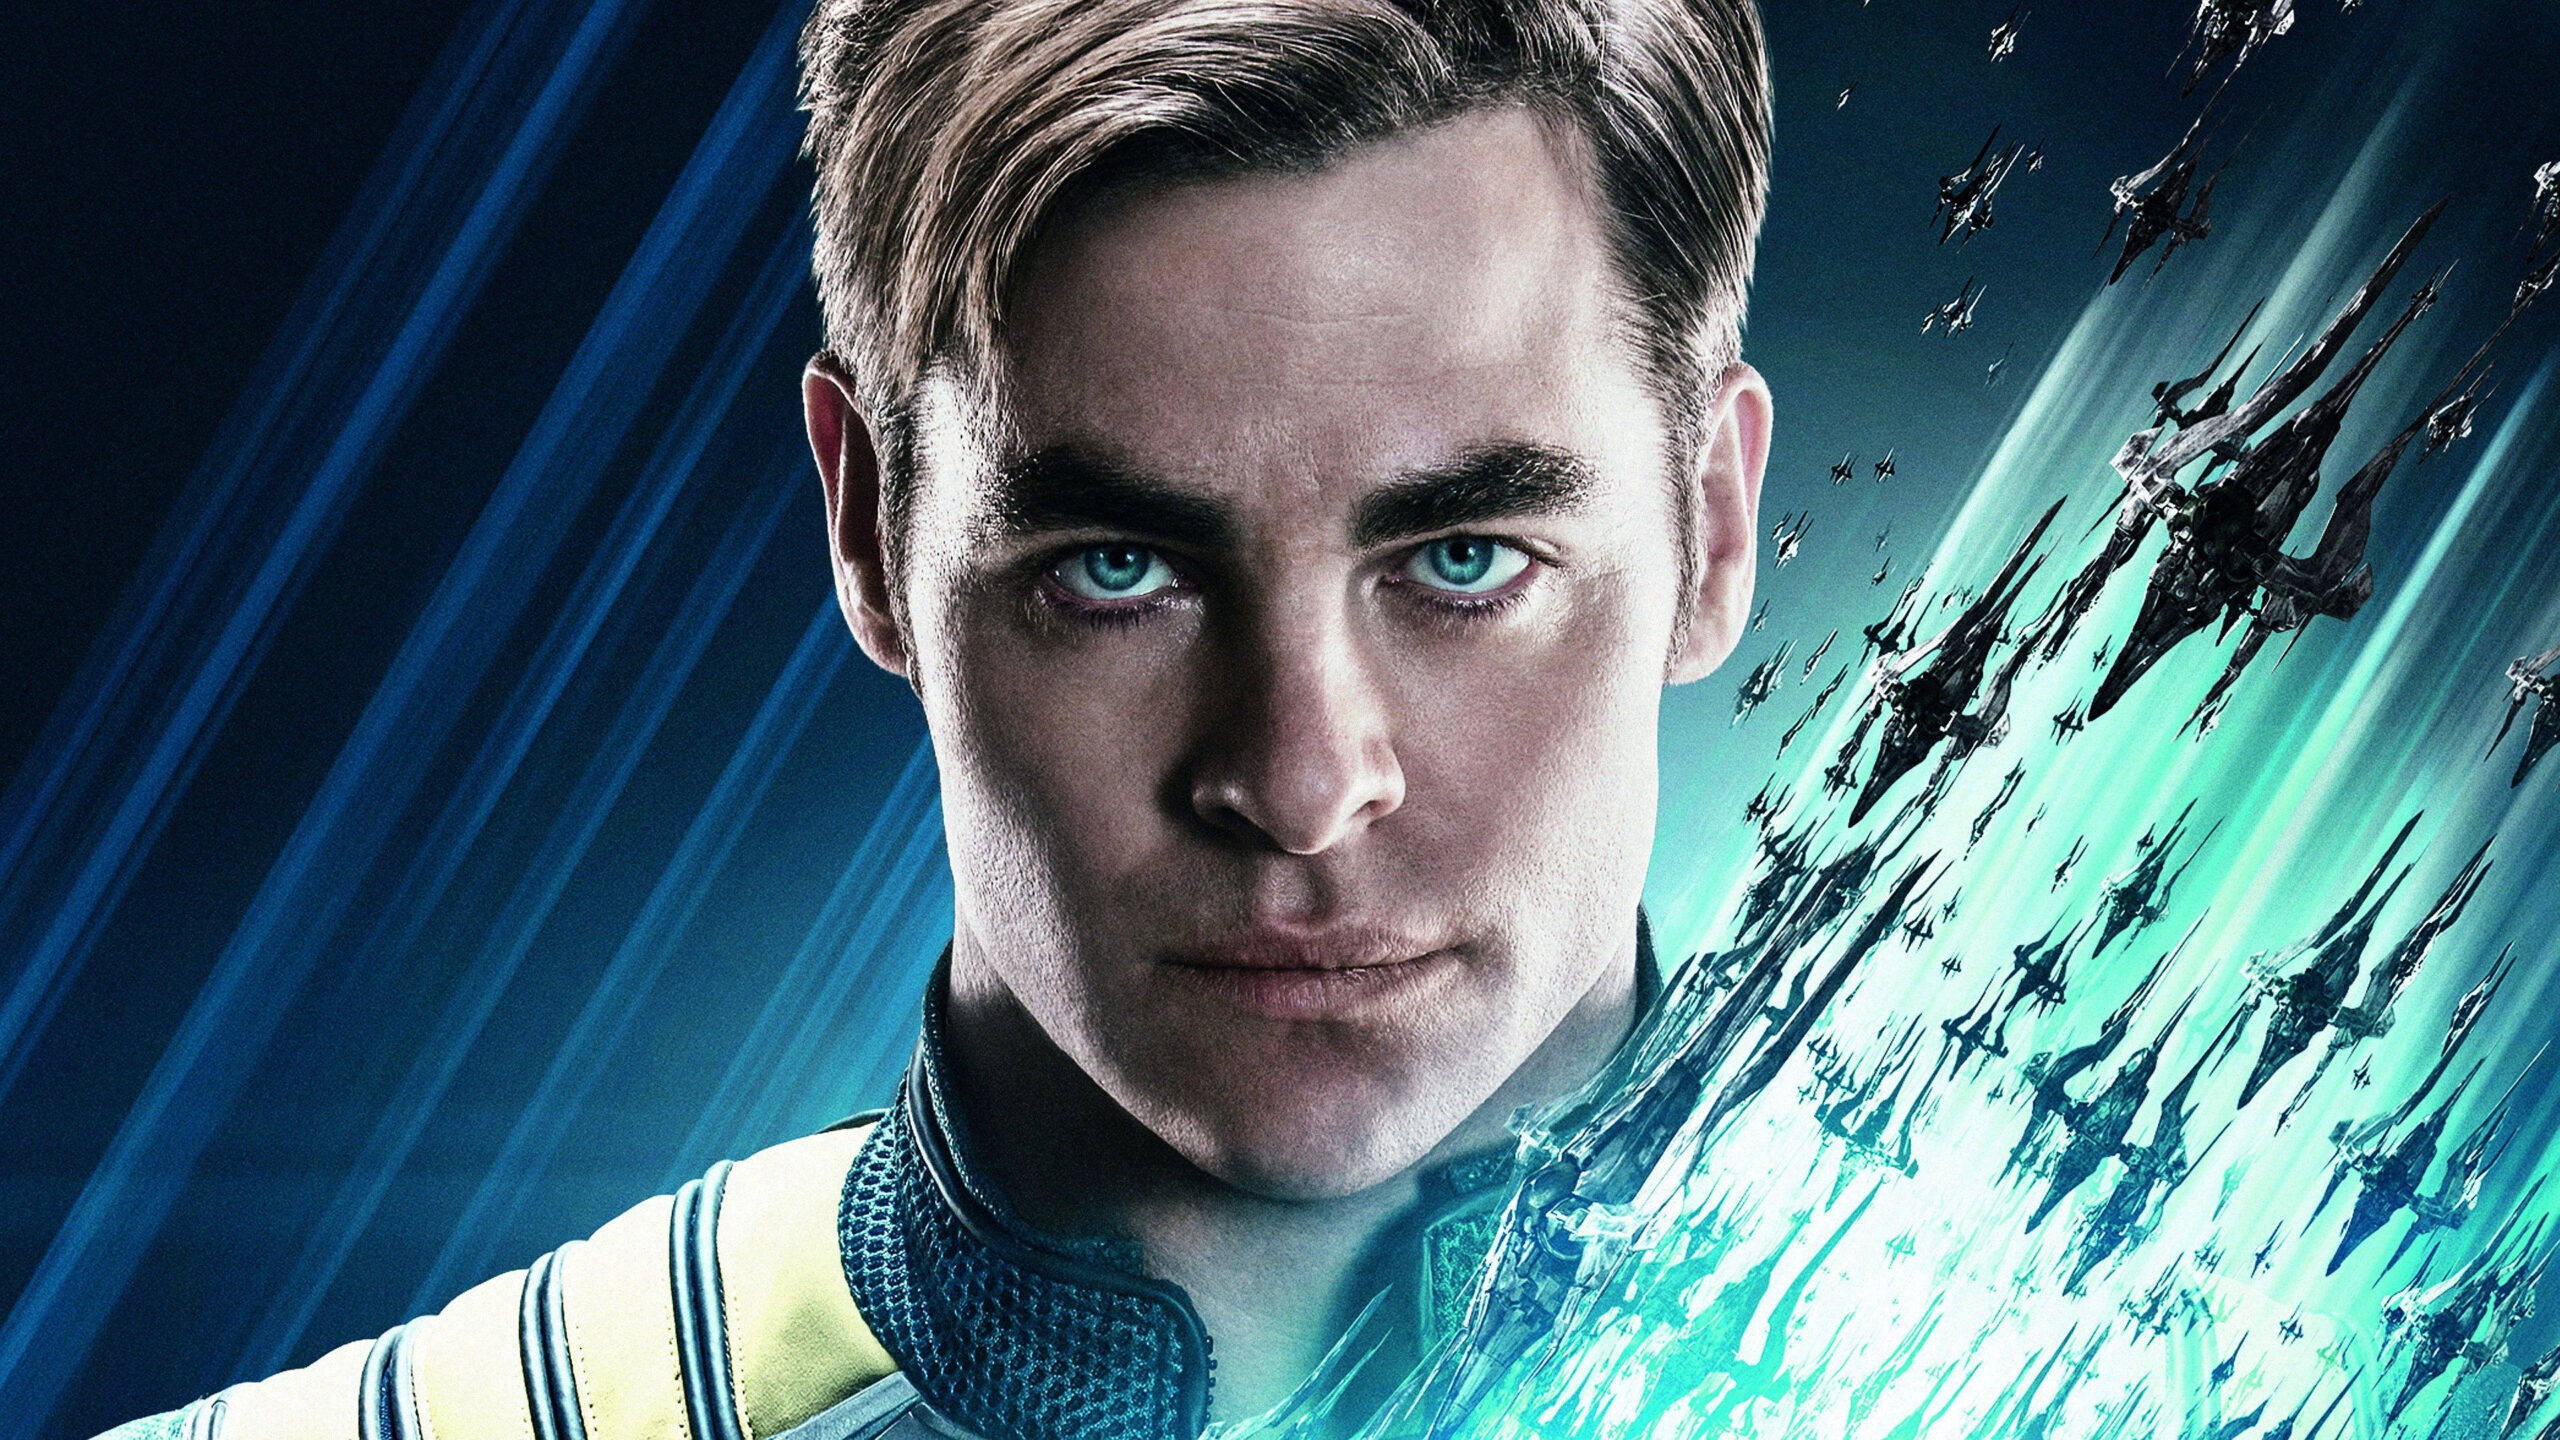 Exclusive: Star Trek 4 Is Back On, New Director Being Hired